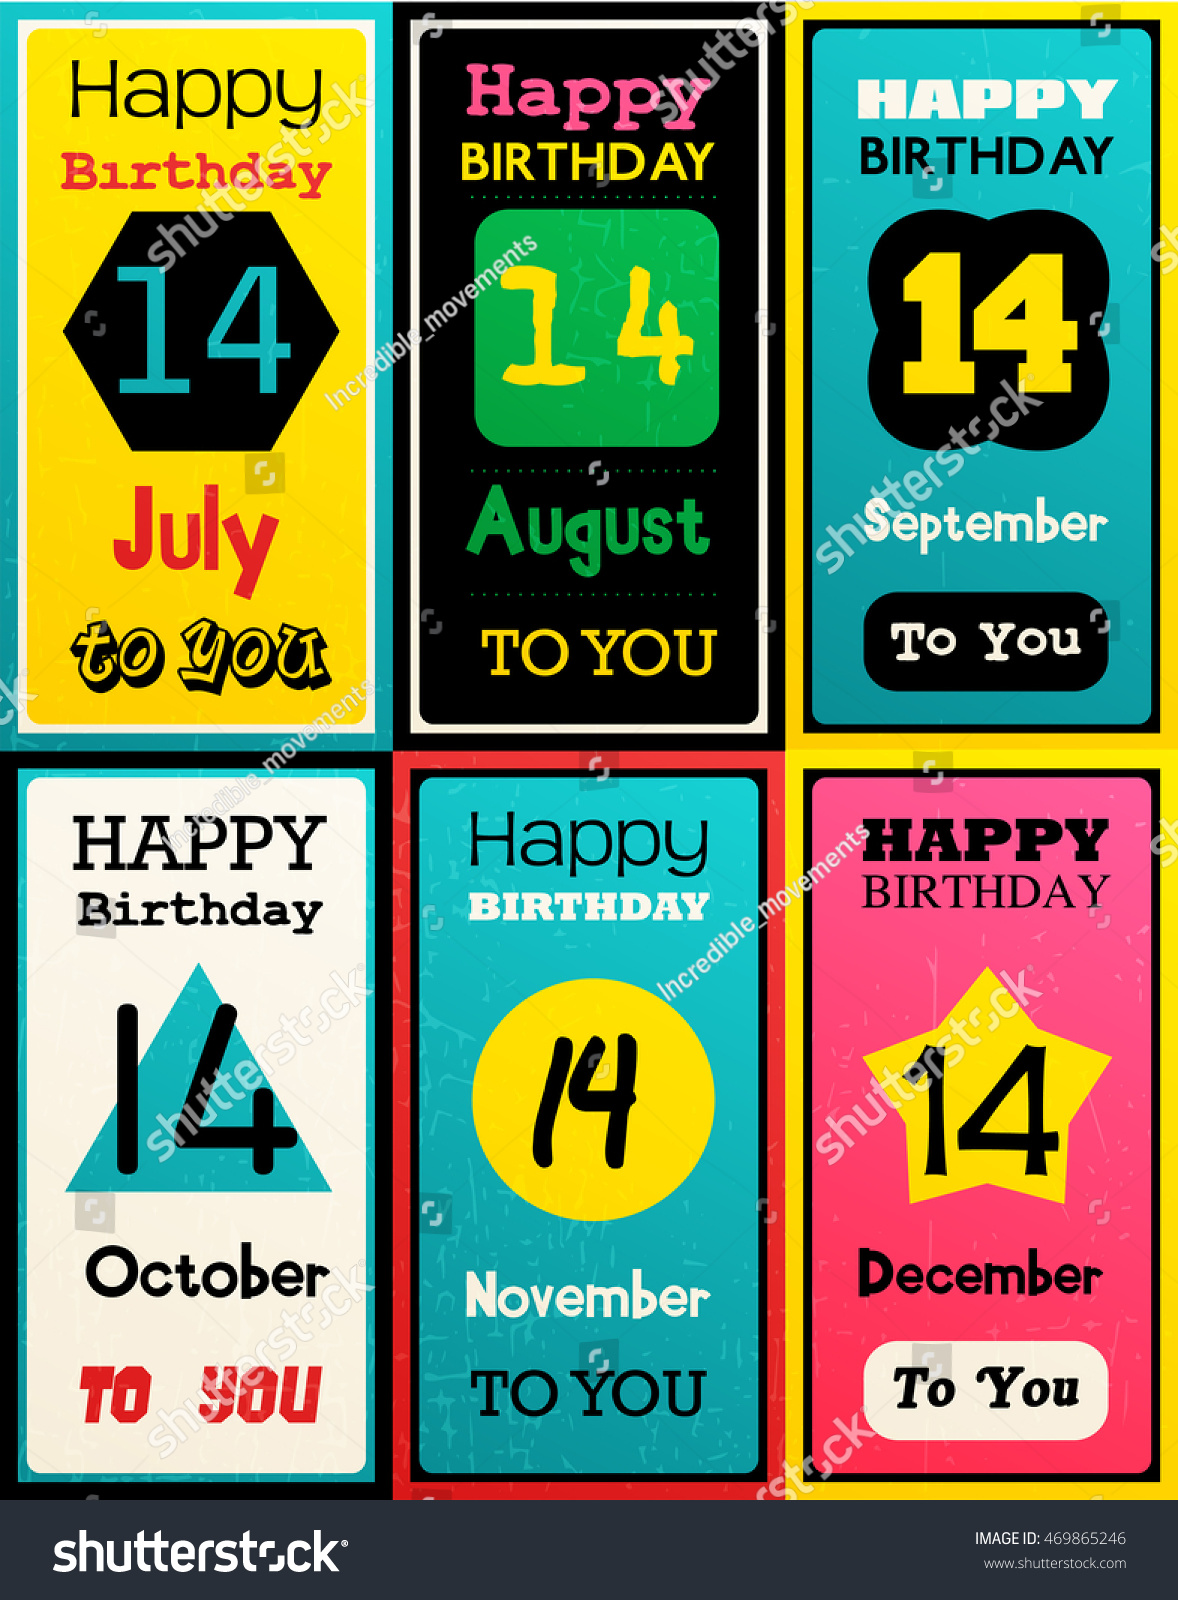 Greeting Happy Birthday Card Date Fourteen Of Birth By Month July August September